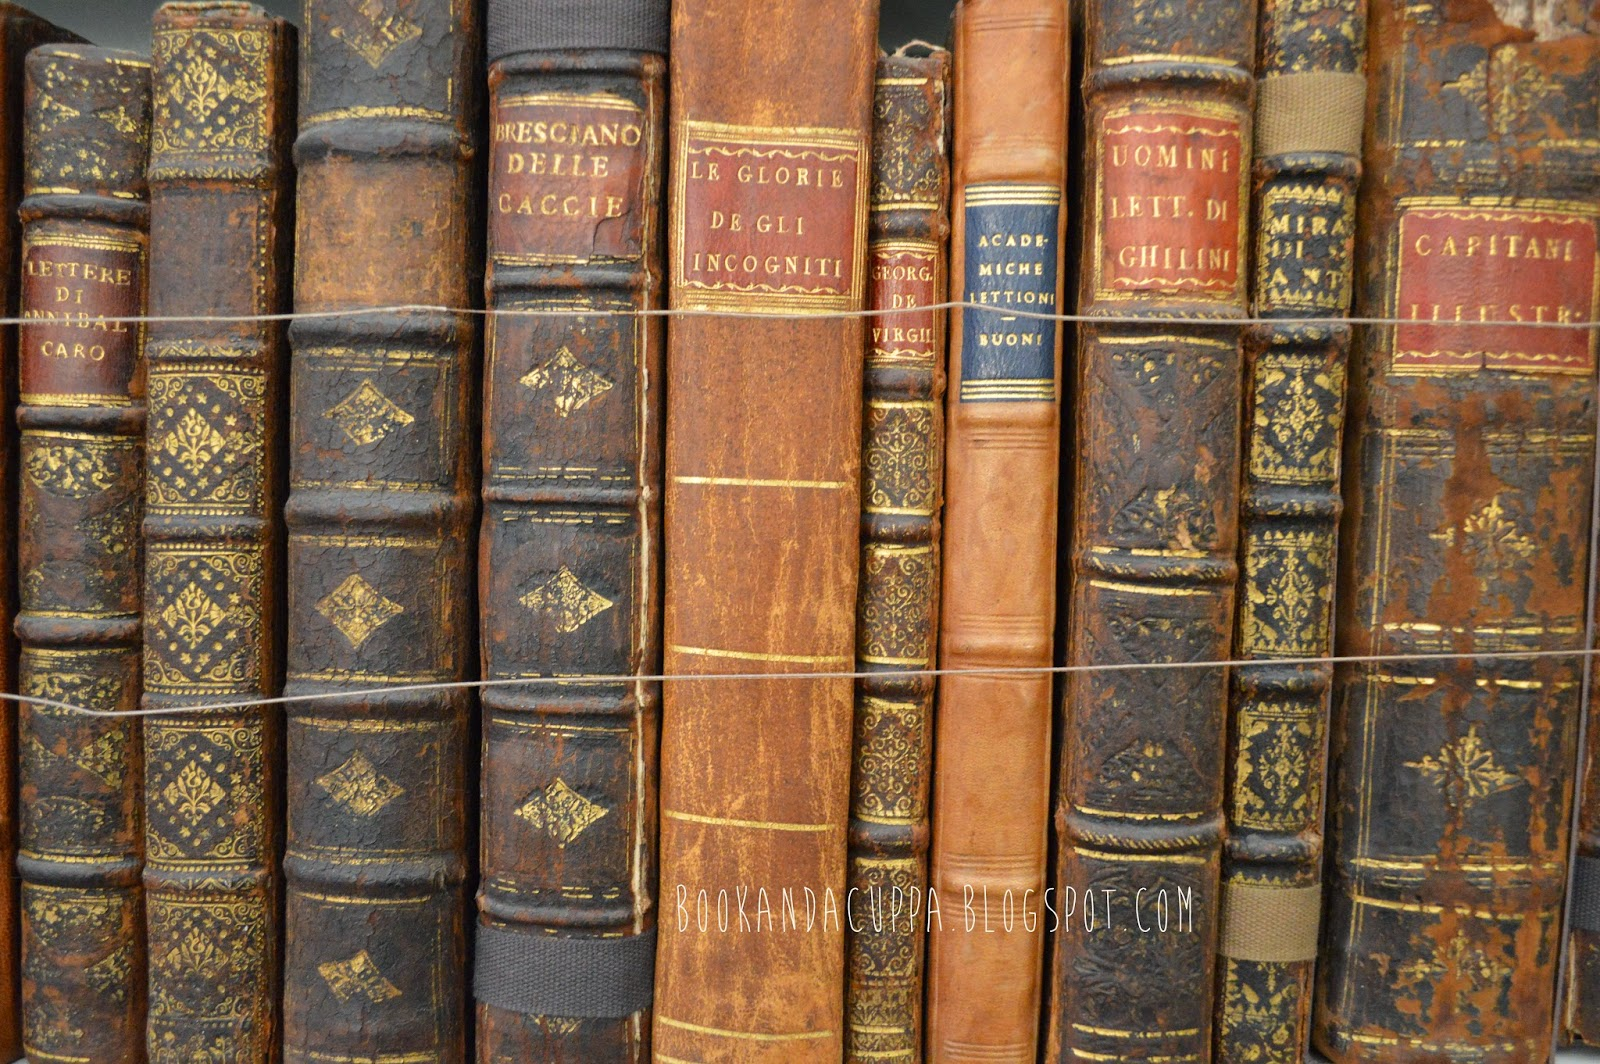 book room, library, old books, Cambridgeshire, Wimpole estate, shelves, pretty, real life Beauty and the Beast, photos, photographs, ladder, classic, brown book spines